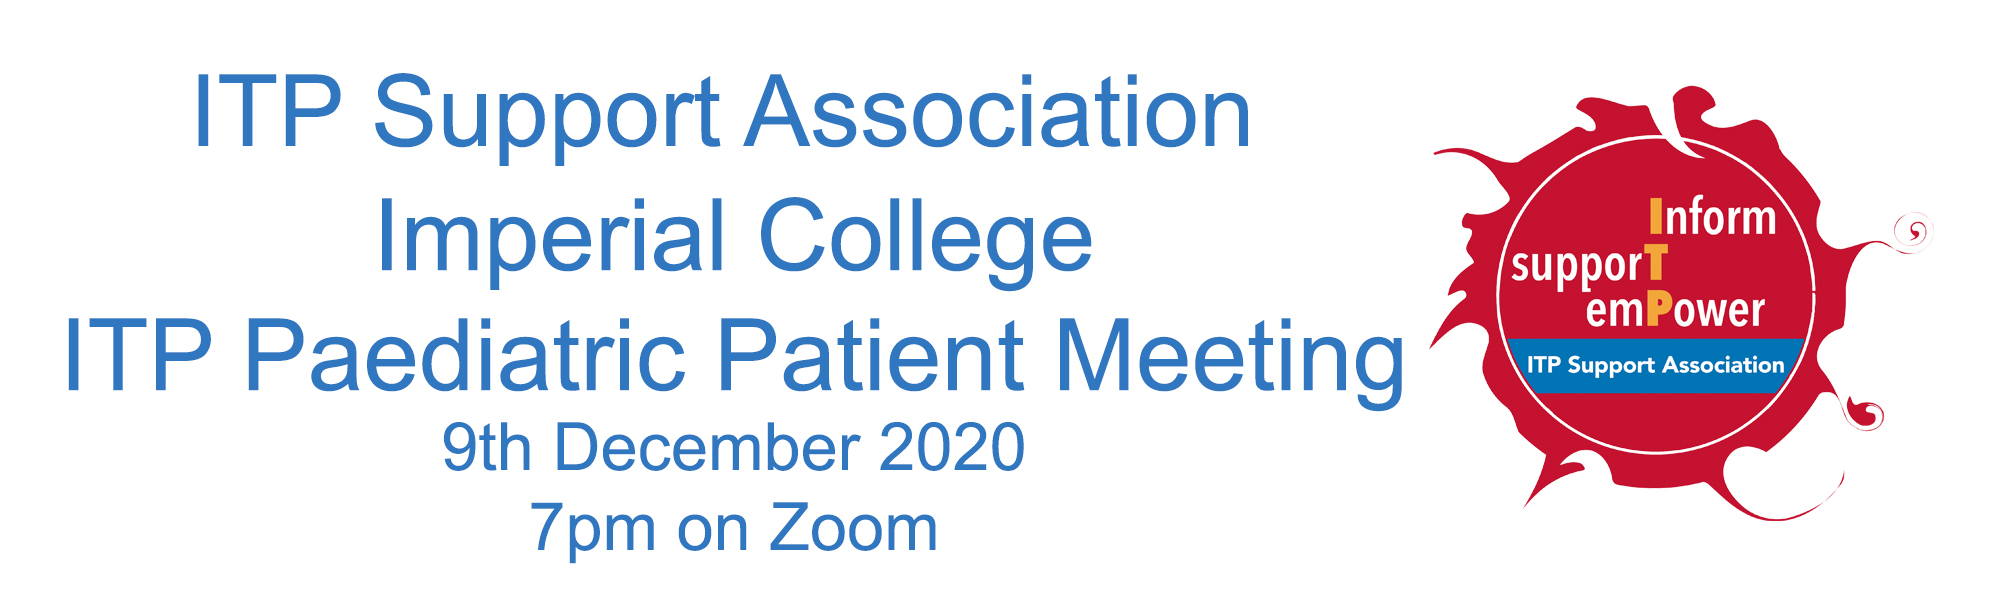 paediatric meeting1 2020